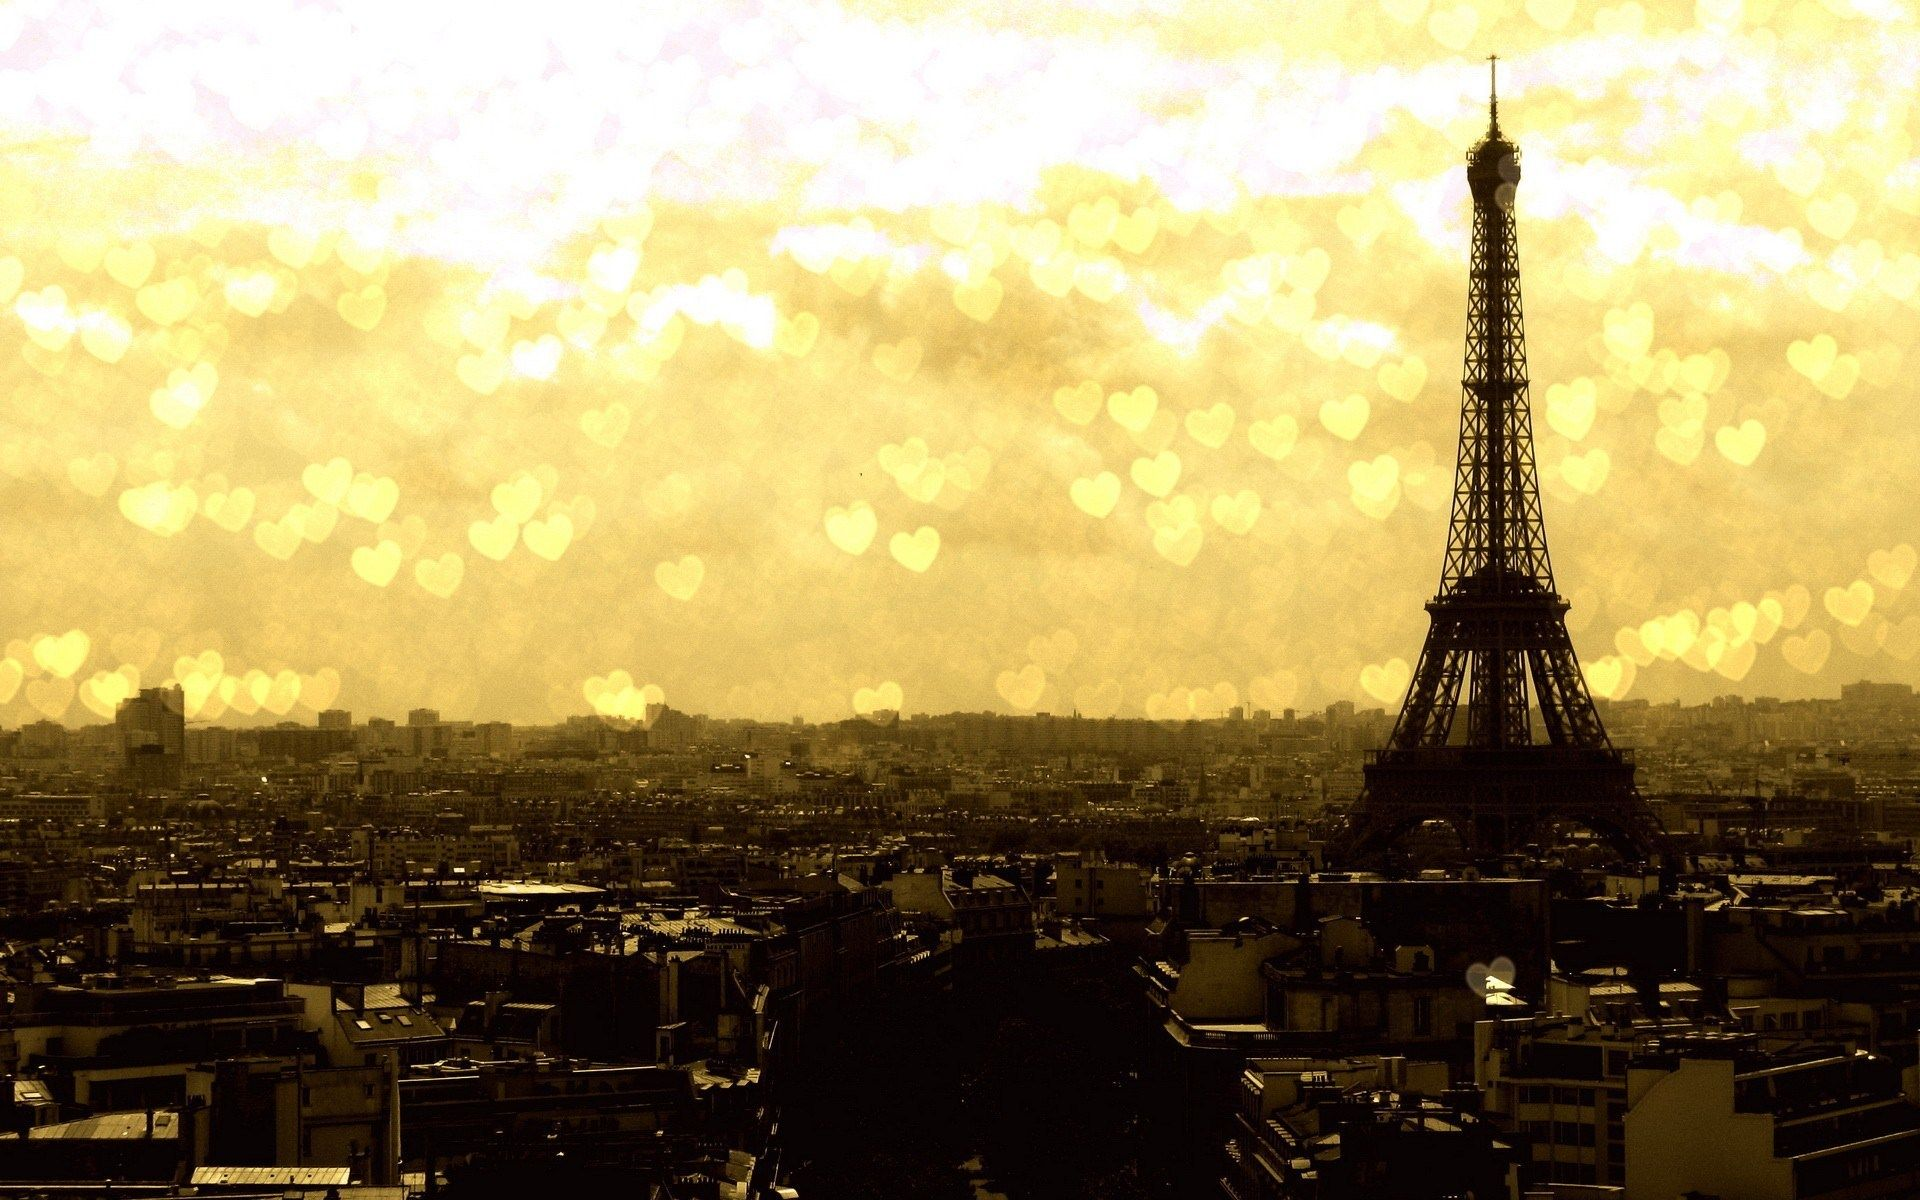 Eiffel tower which is located in Paris, is considered as one of the most famous…